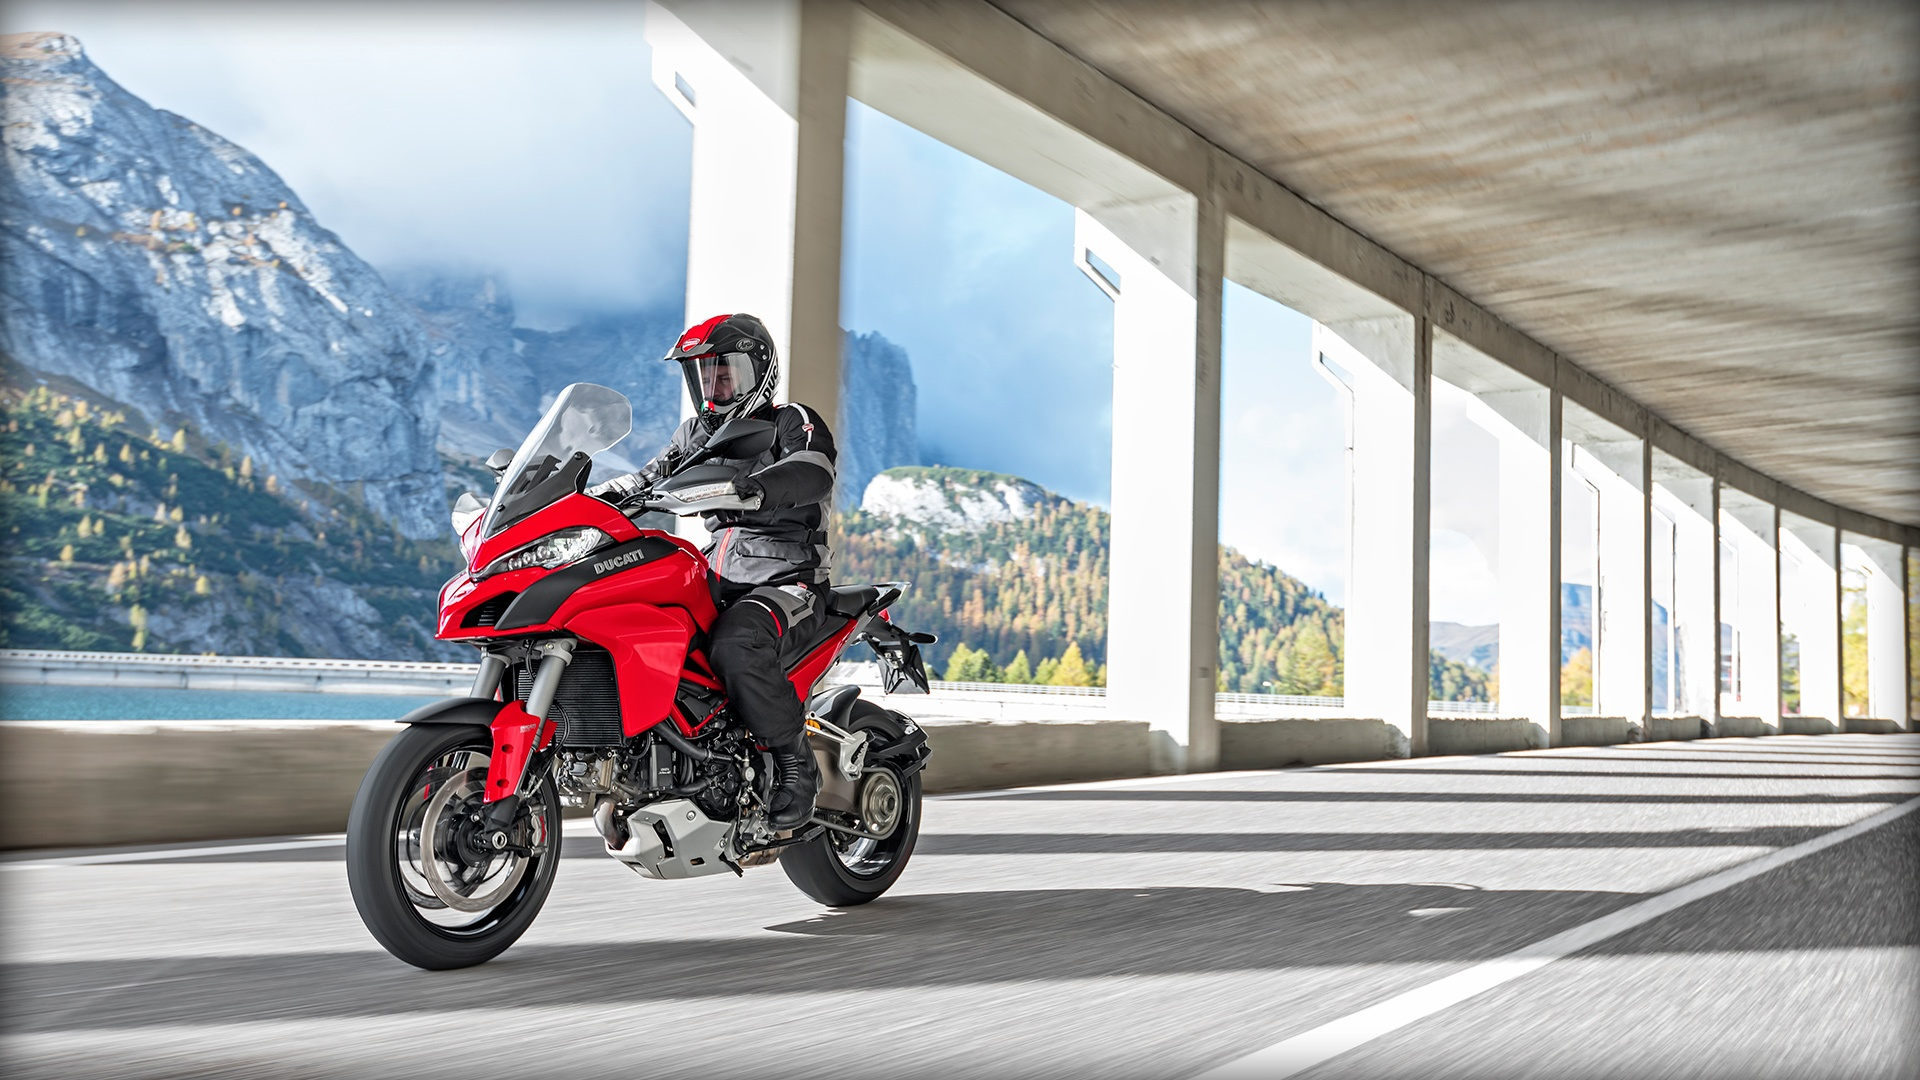 2017 Ducati Multistrada 1200 S in Miami, Florida